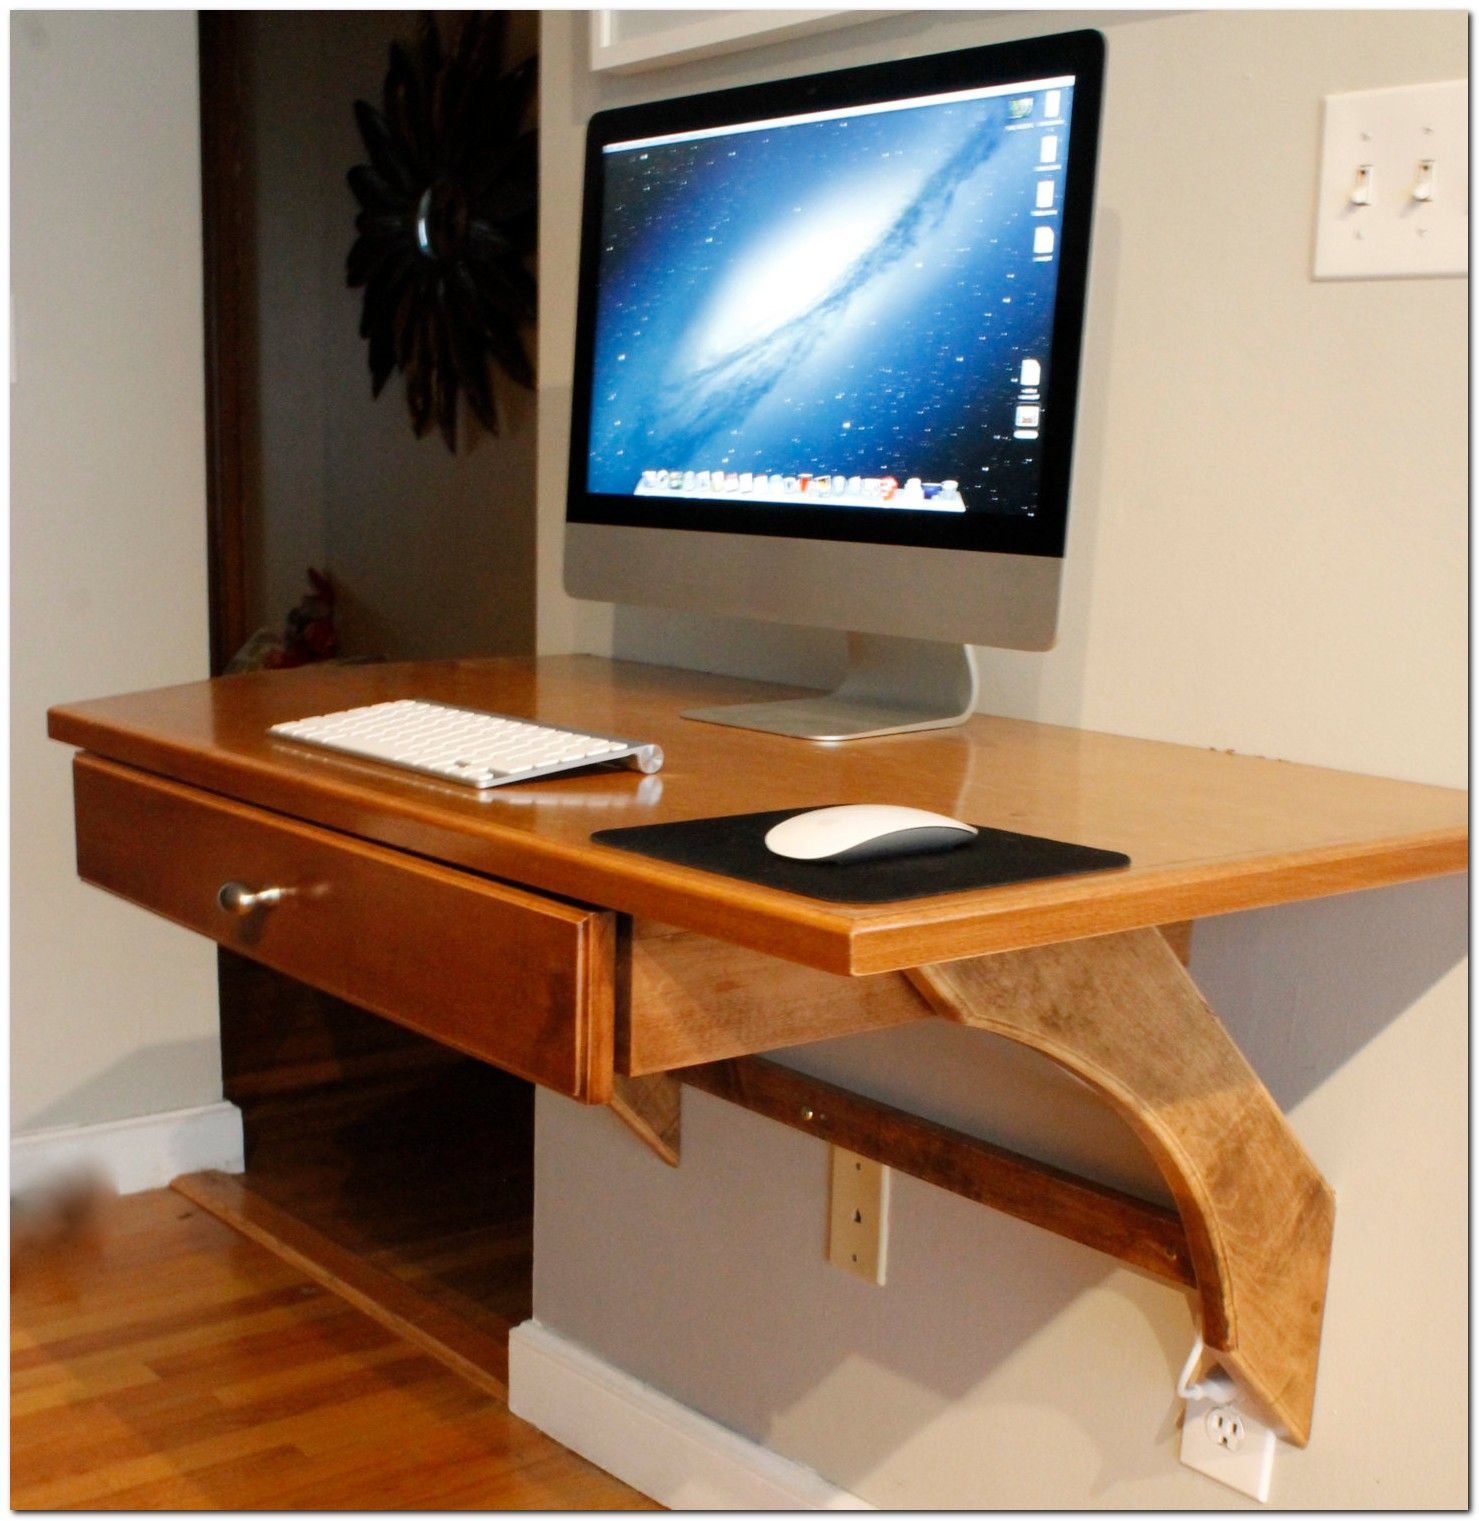 100 Modern Wall Mounted Desk Ideas The Urban Interior Diy Wood Desk Computer Desk Design Wall Mounted Desk